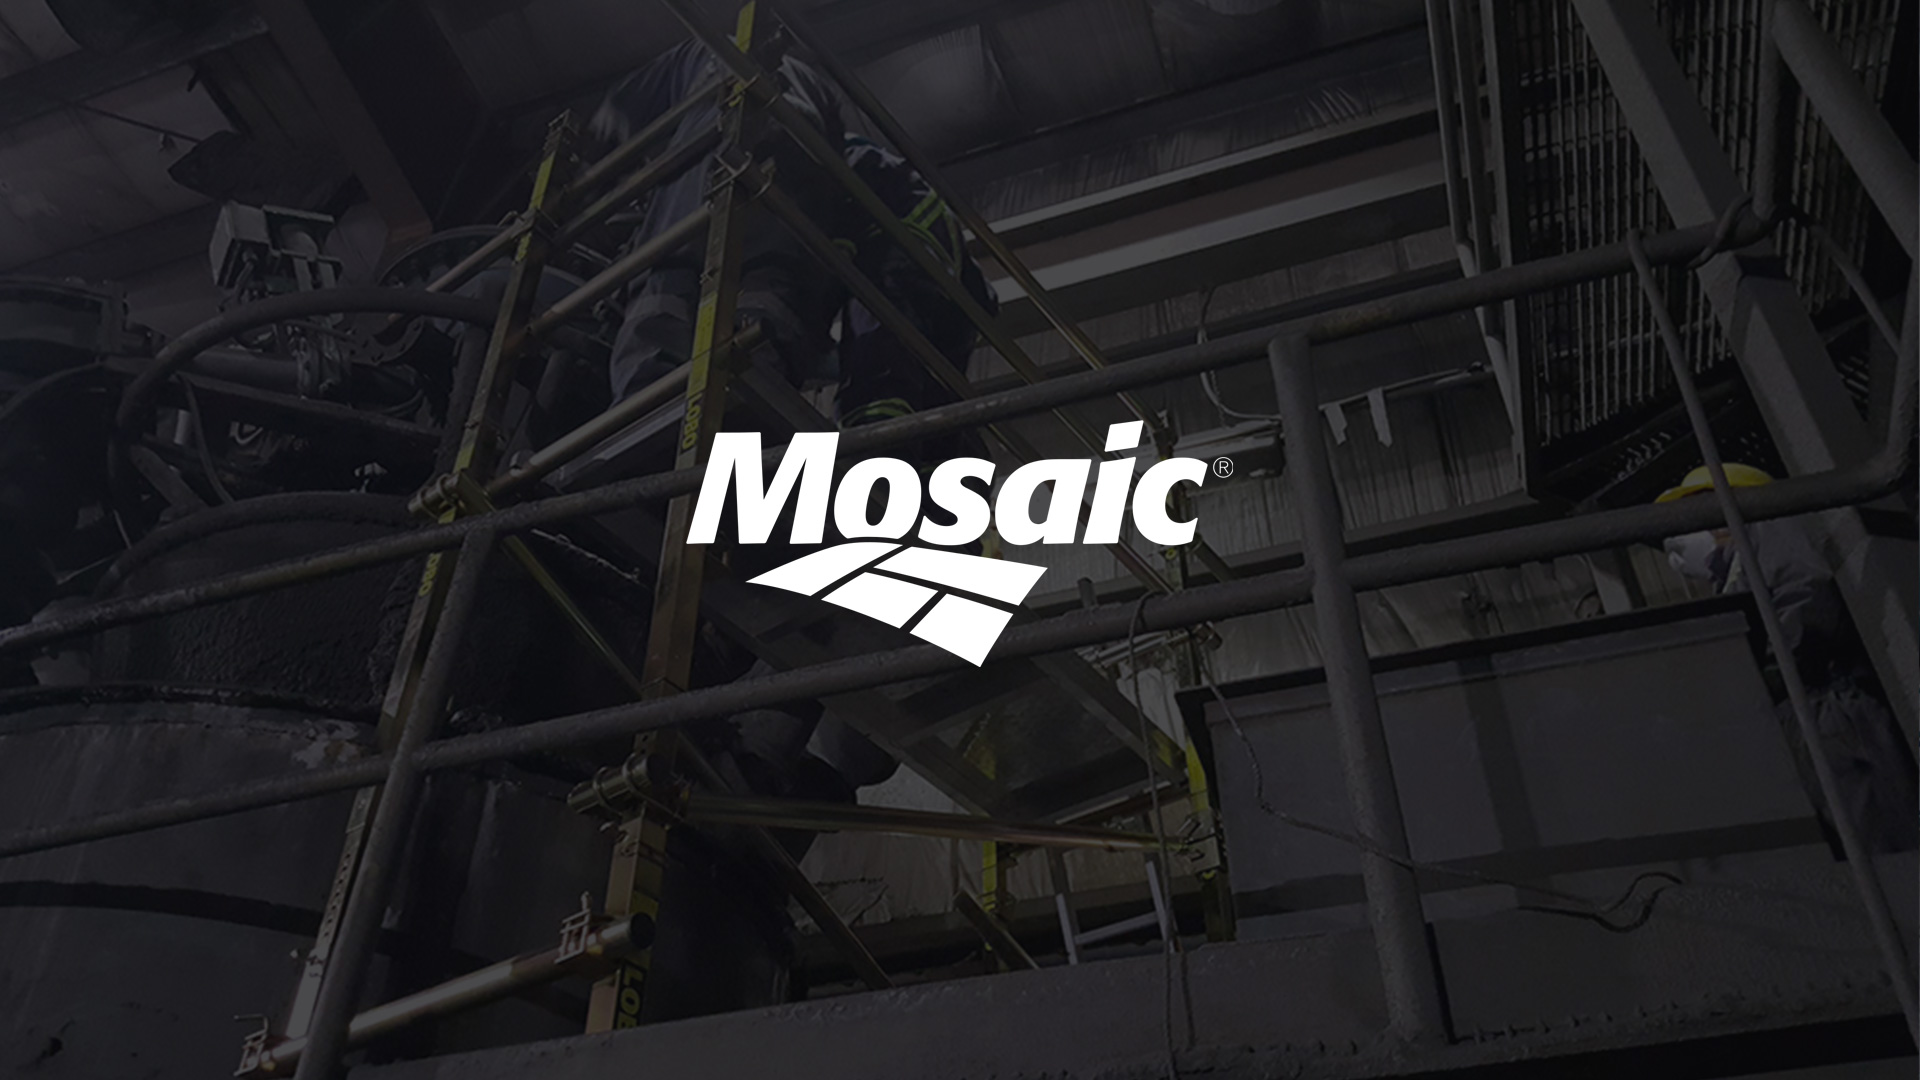 The Mosaic Company: Mining